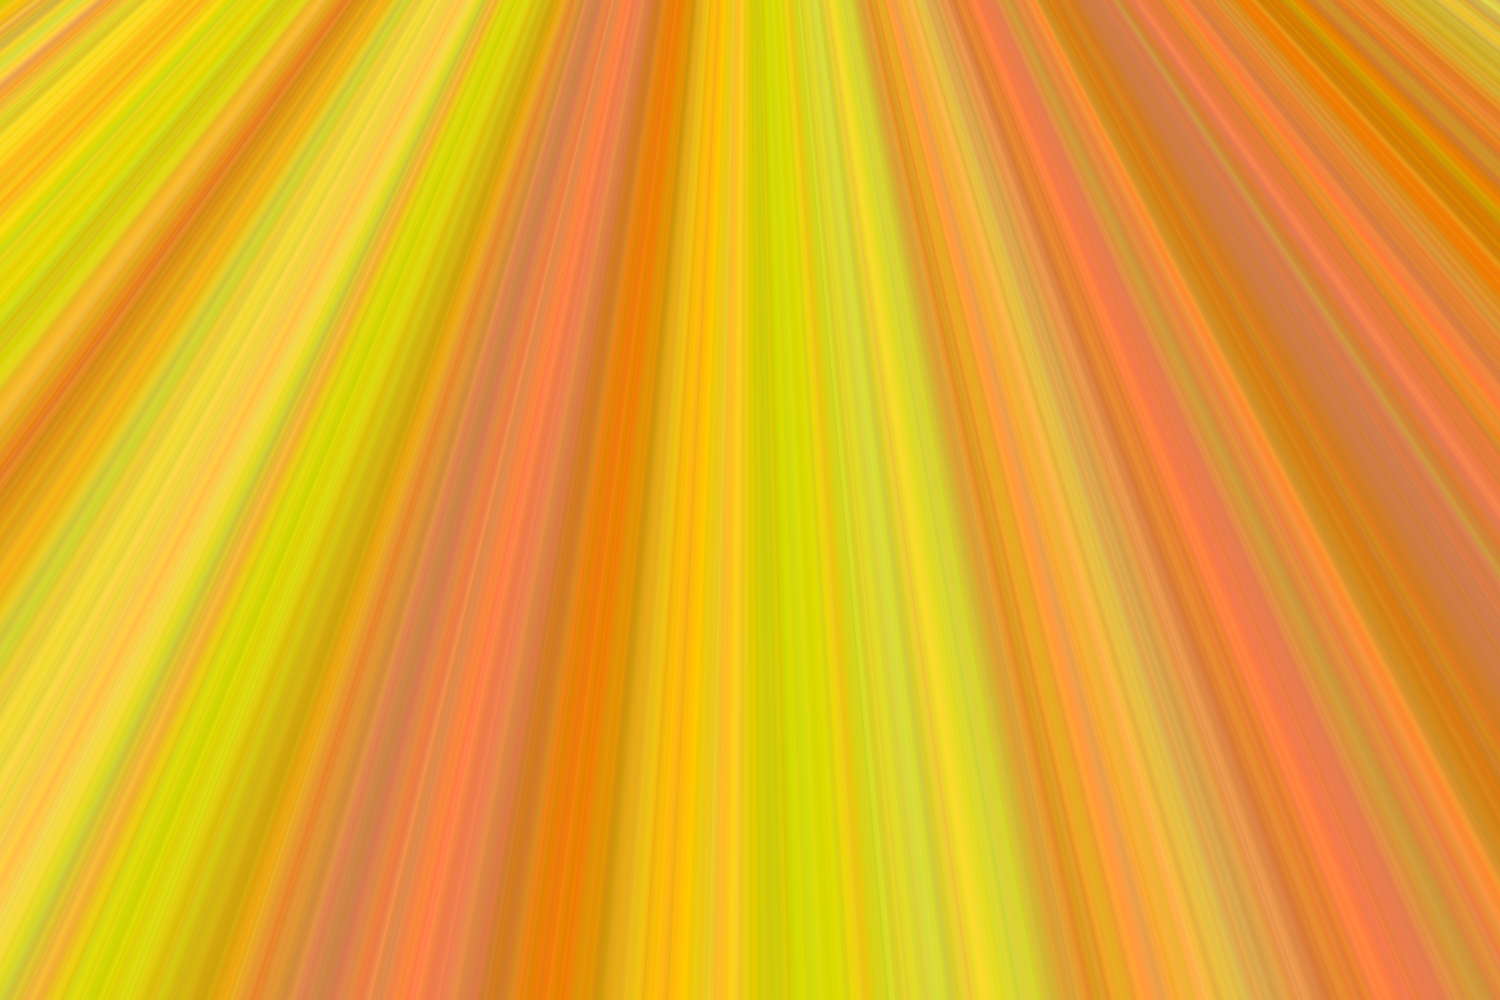 10 Color Backgrounds (AI, EPS, JPG 5000x5000) example image 4